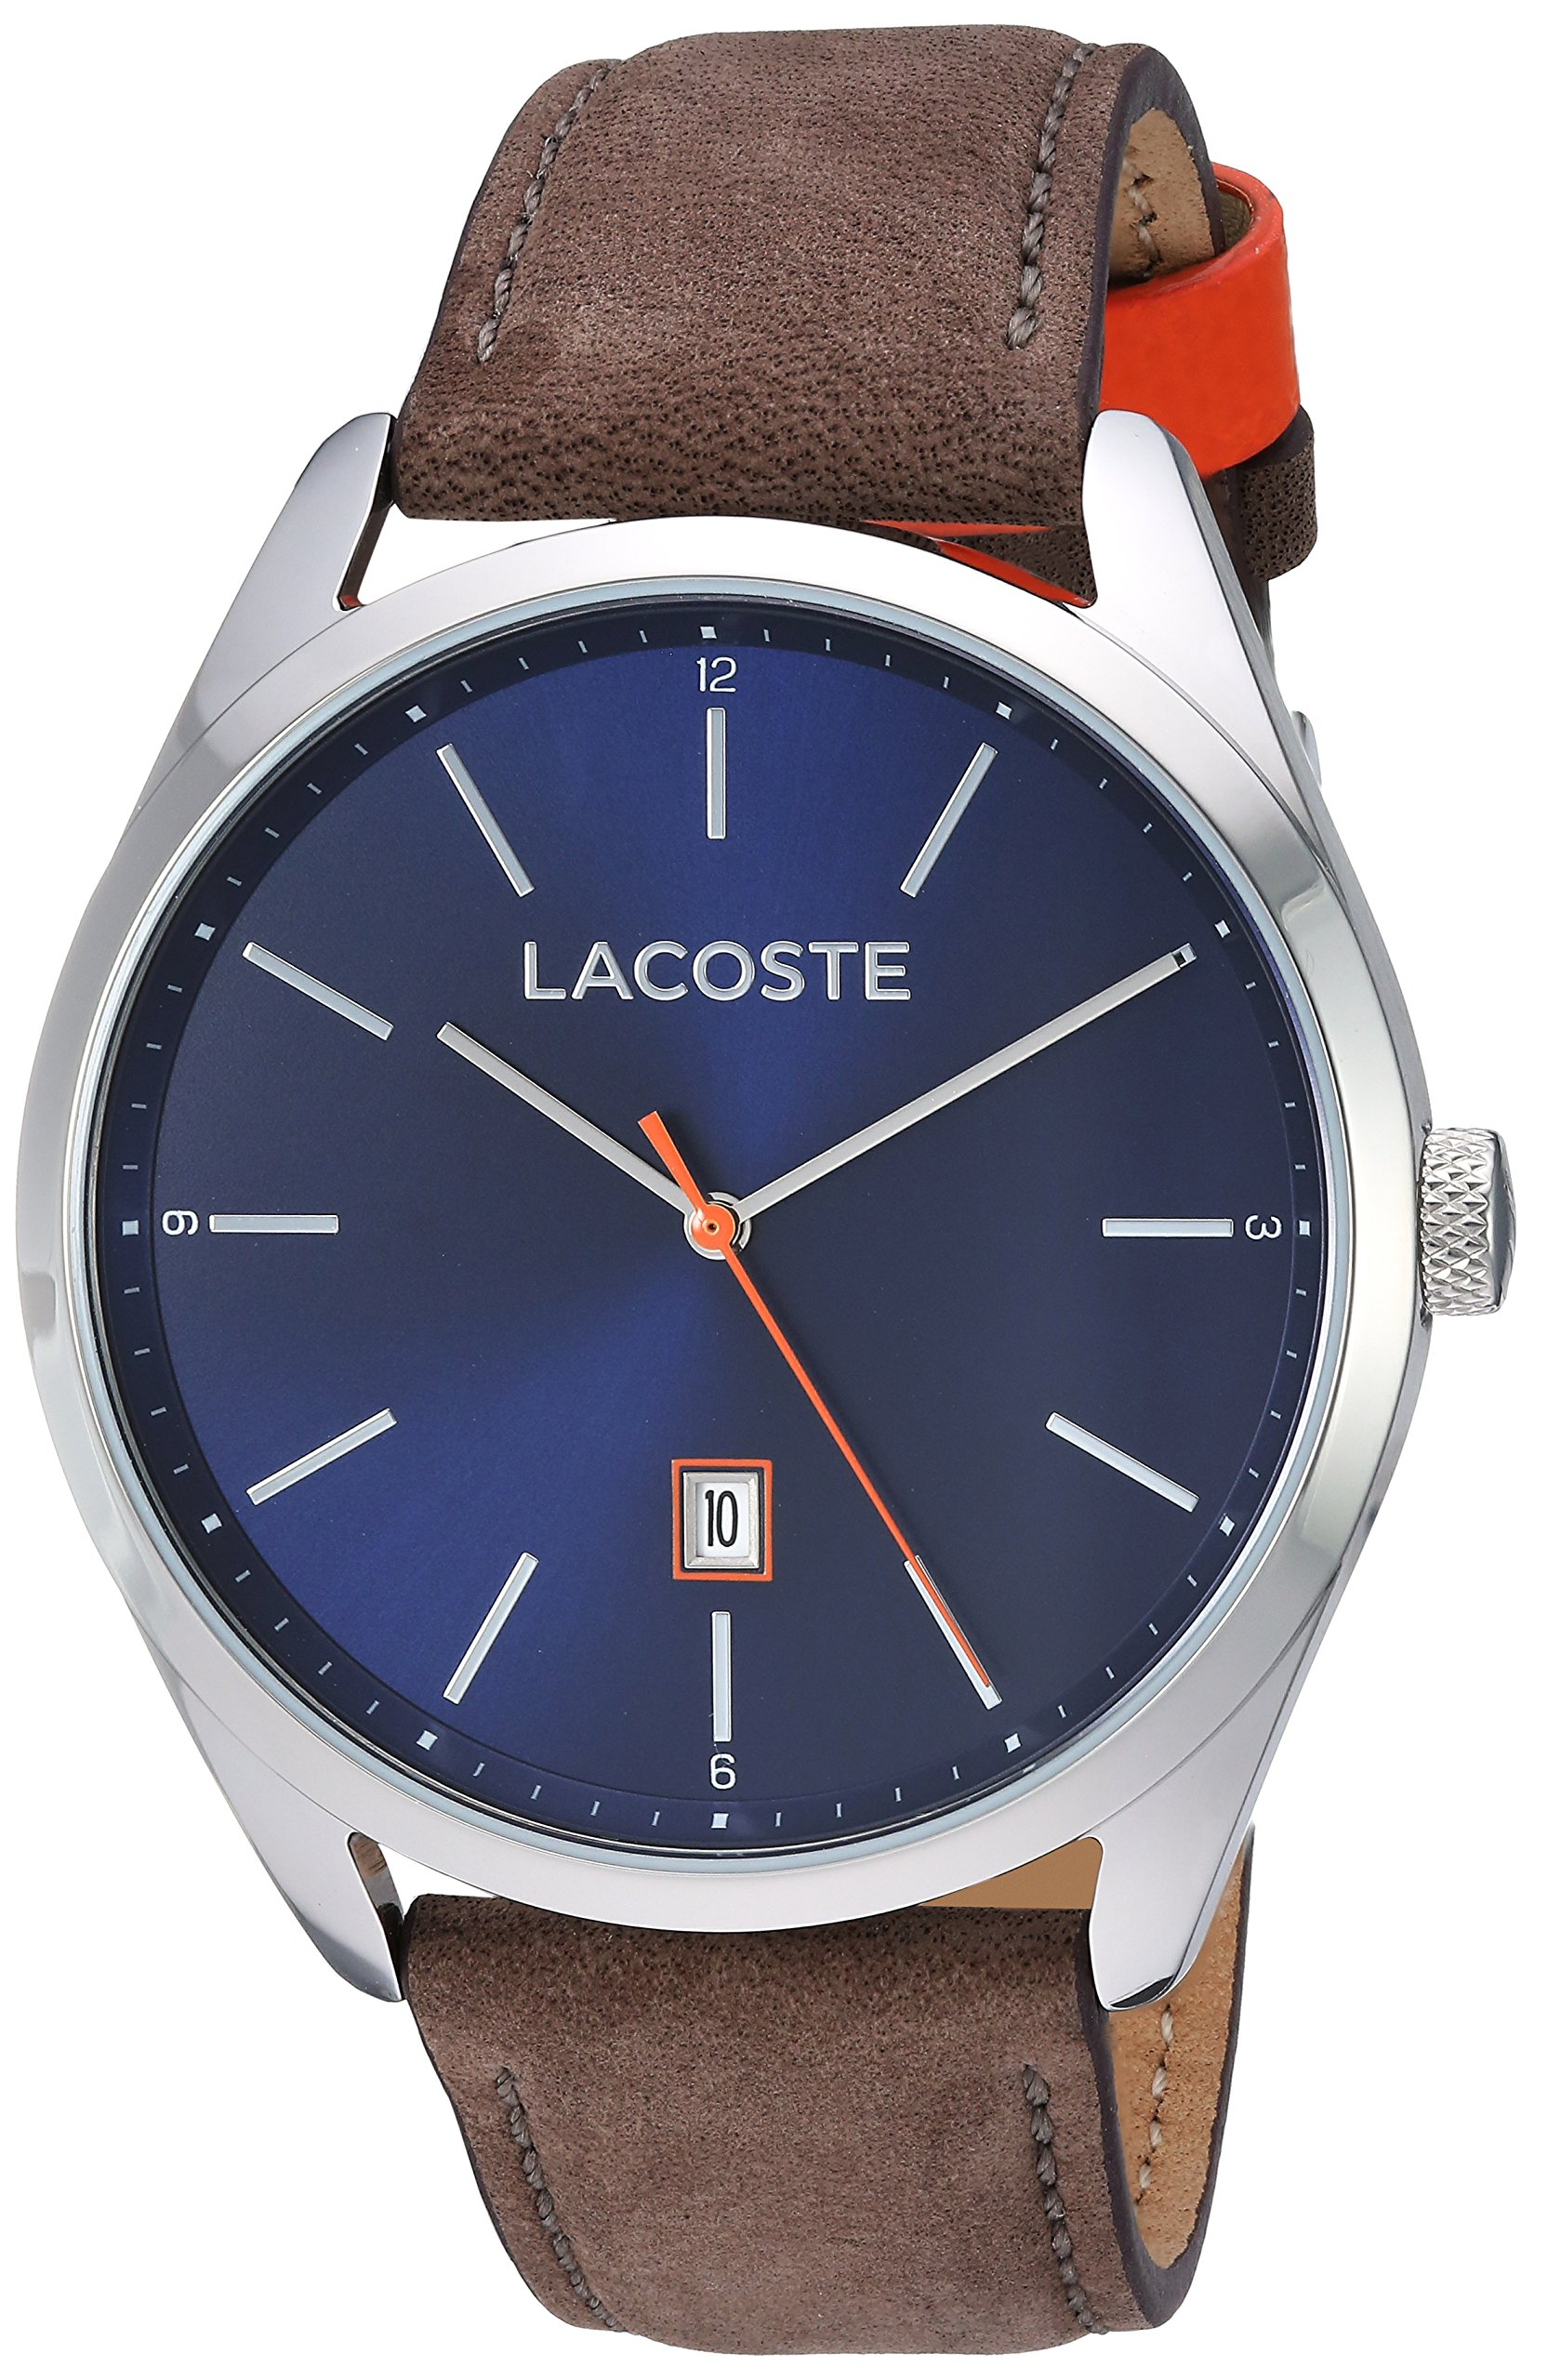 Lacoste Men's San Diego Stainless Steel Quartz Watch with Suede Strap, Brown, 22 (Model: 2010910) by Lacoste